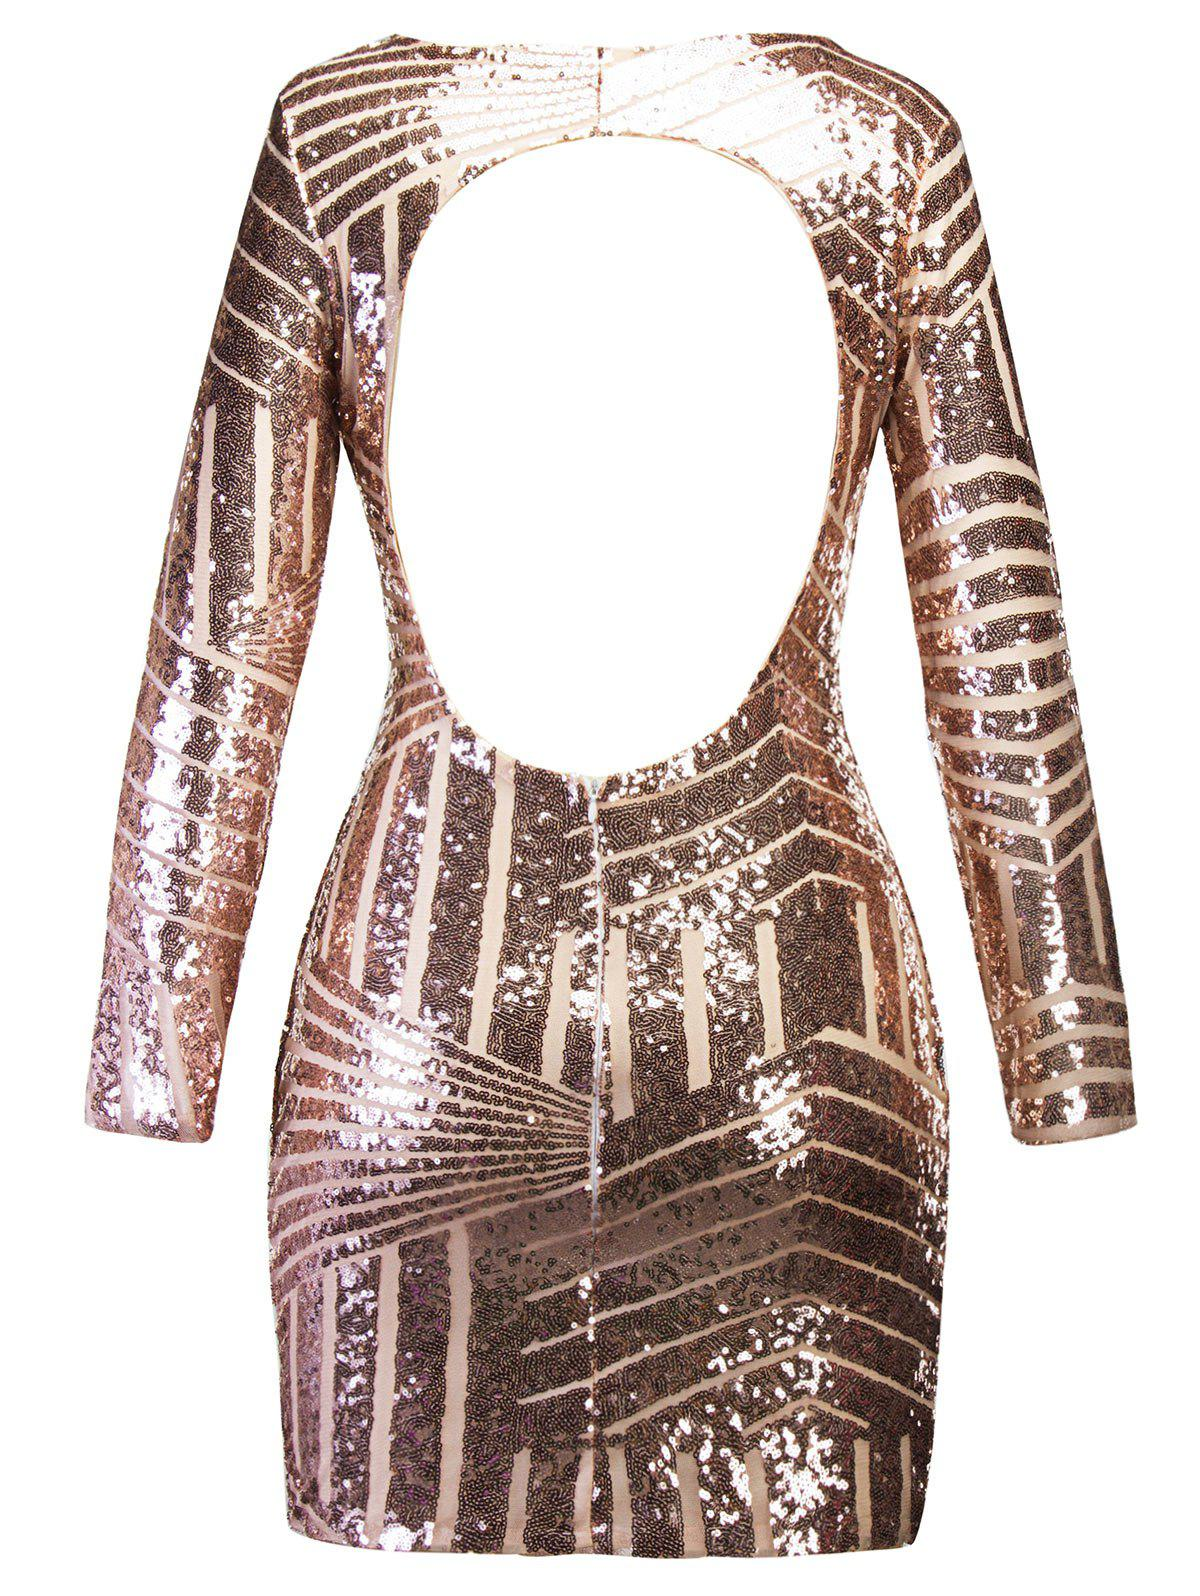 Backless Sequin Mini Bodycon Party Dress - GOLDEN 2XL